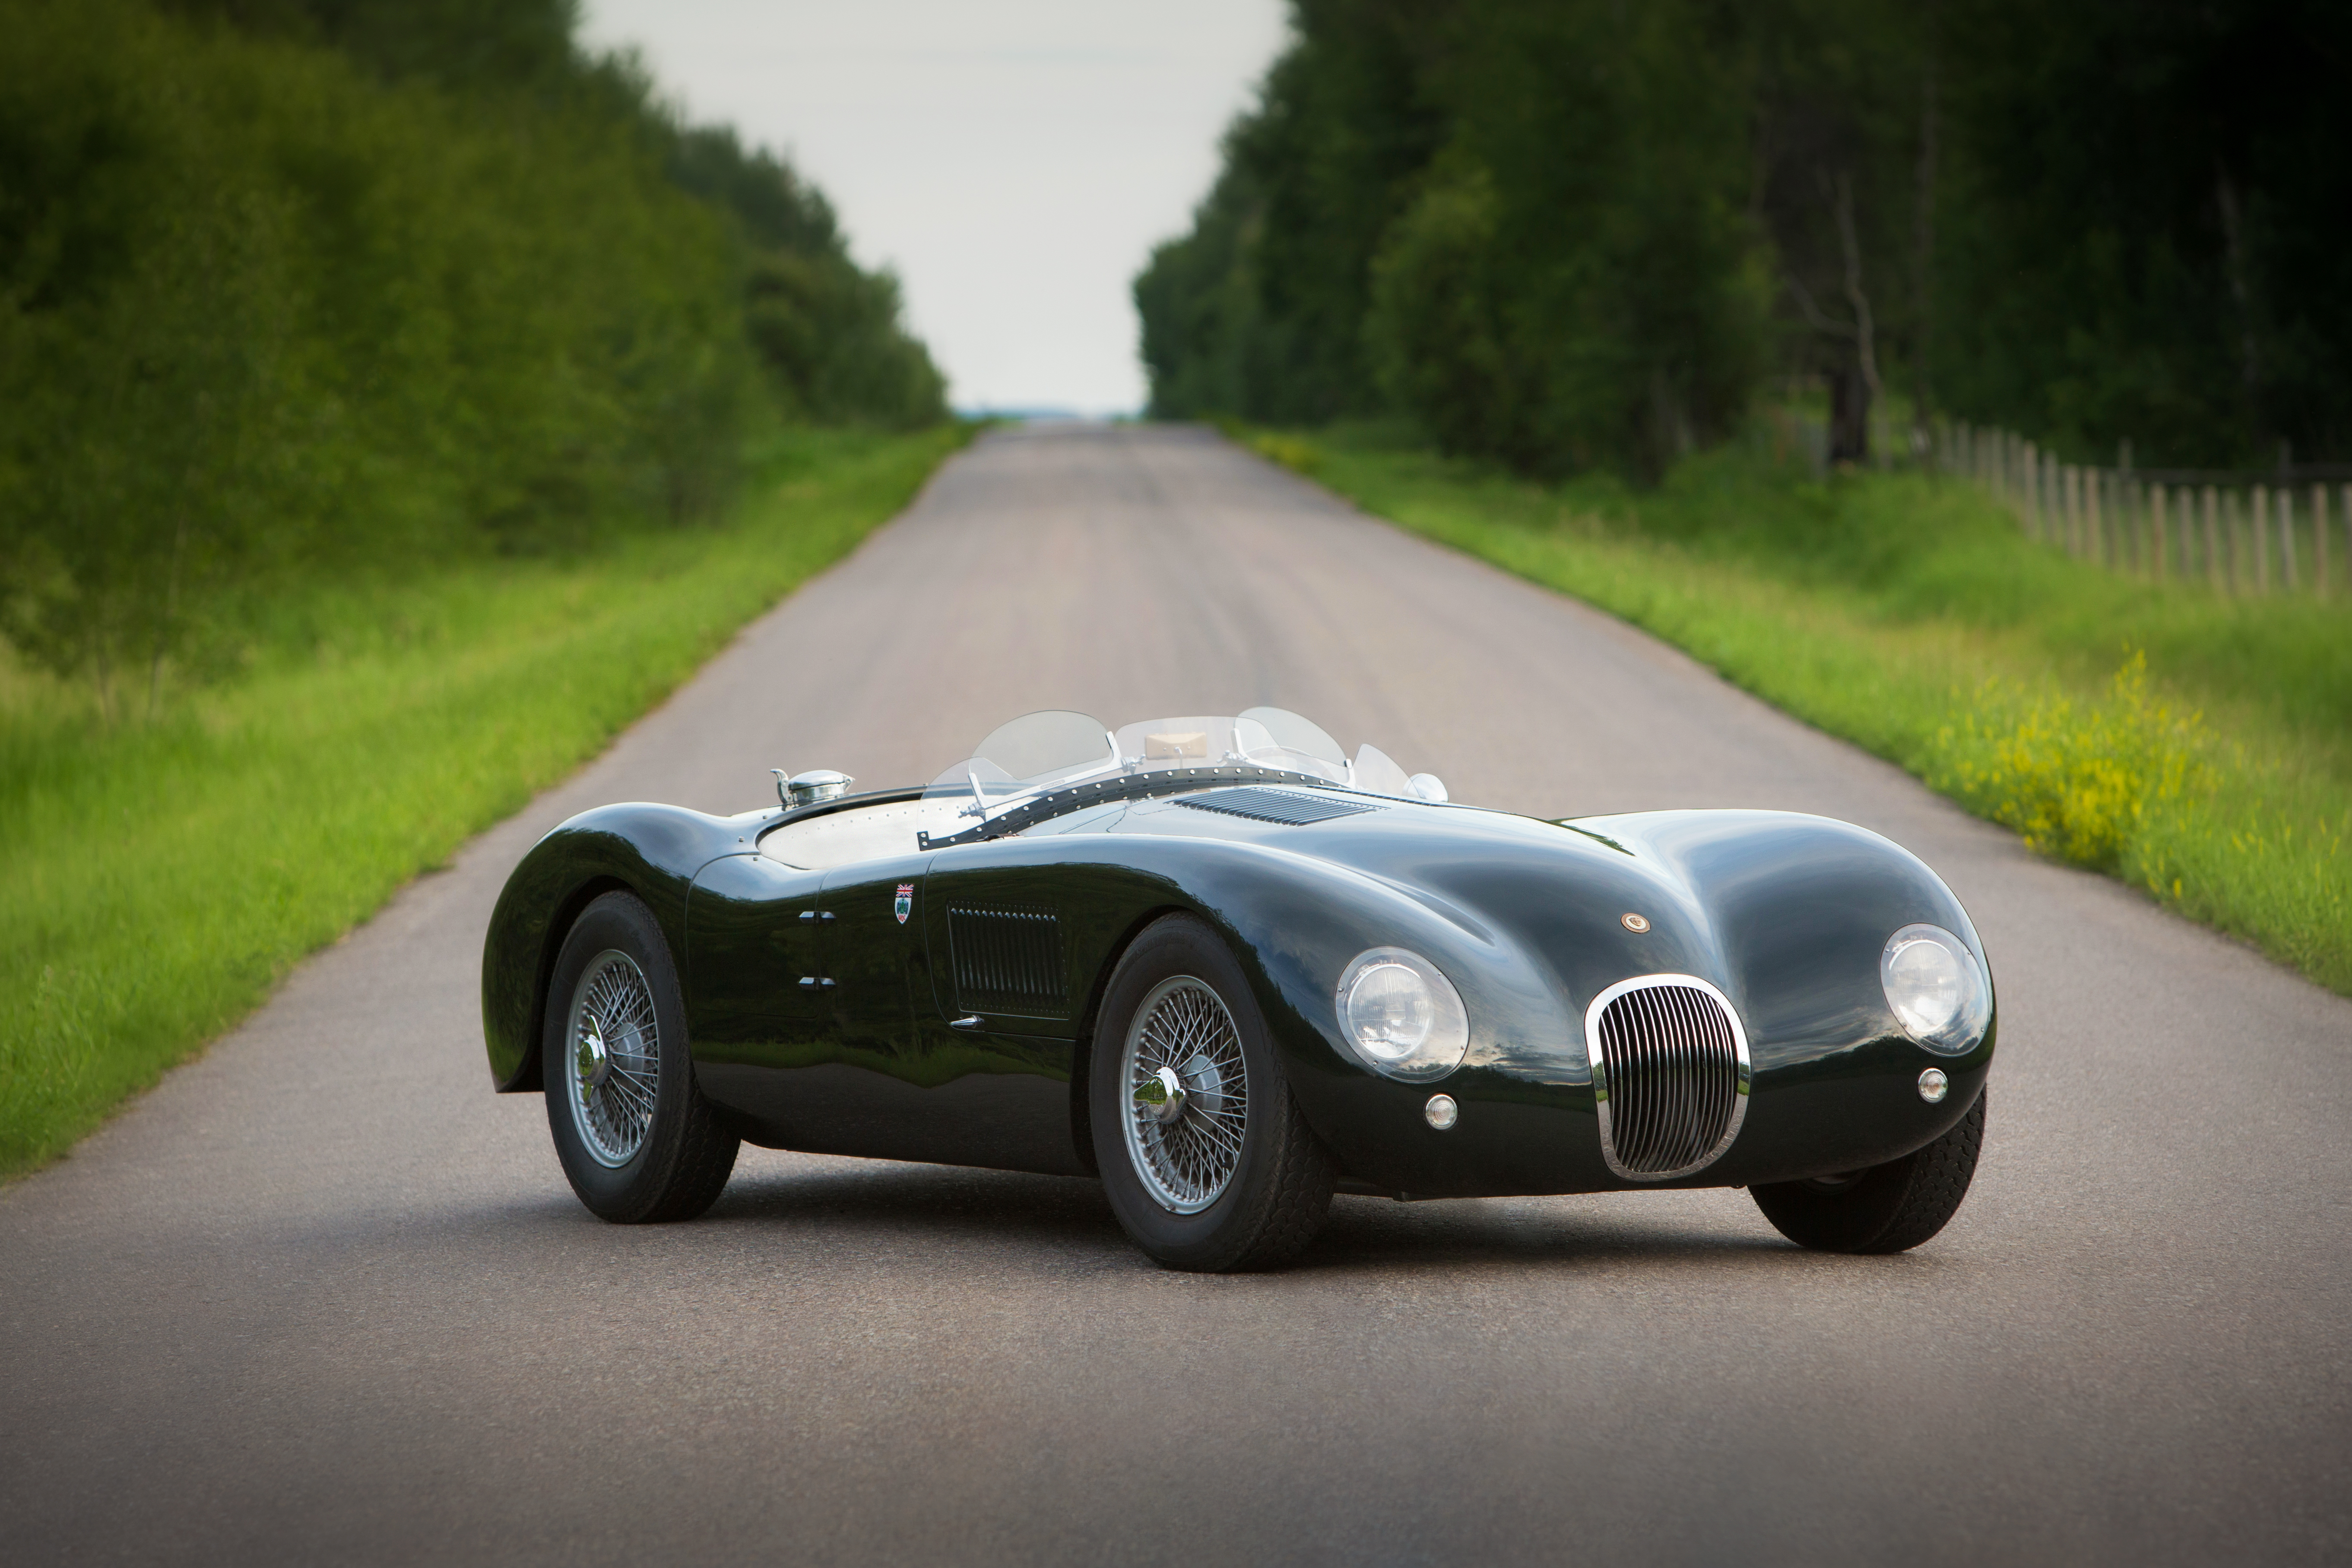 Classic Jaguar car parked on an open road